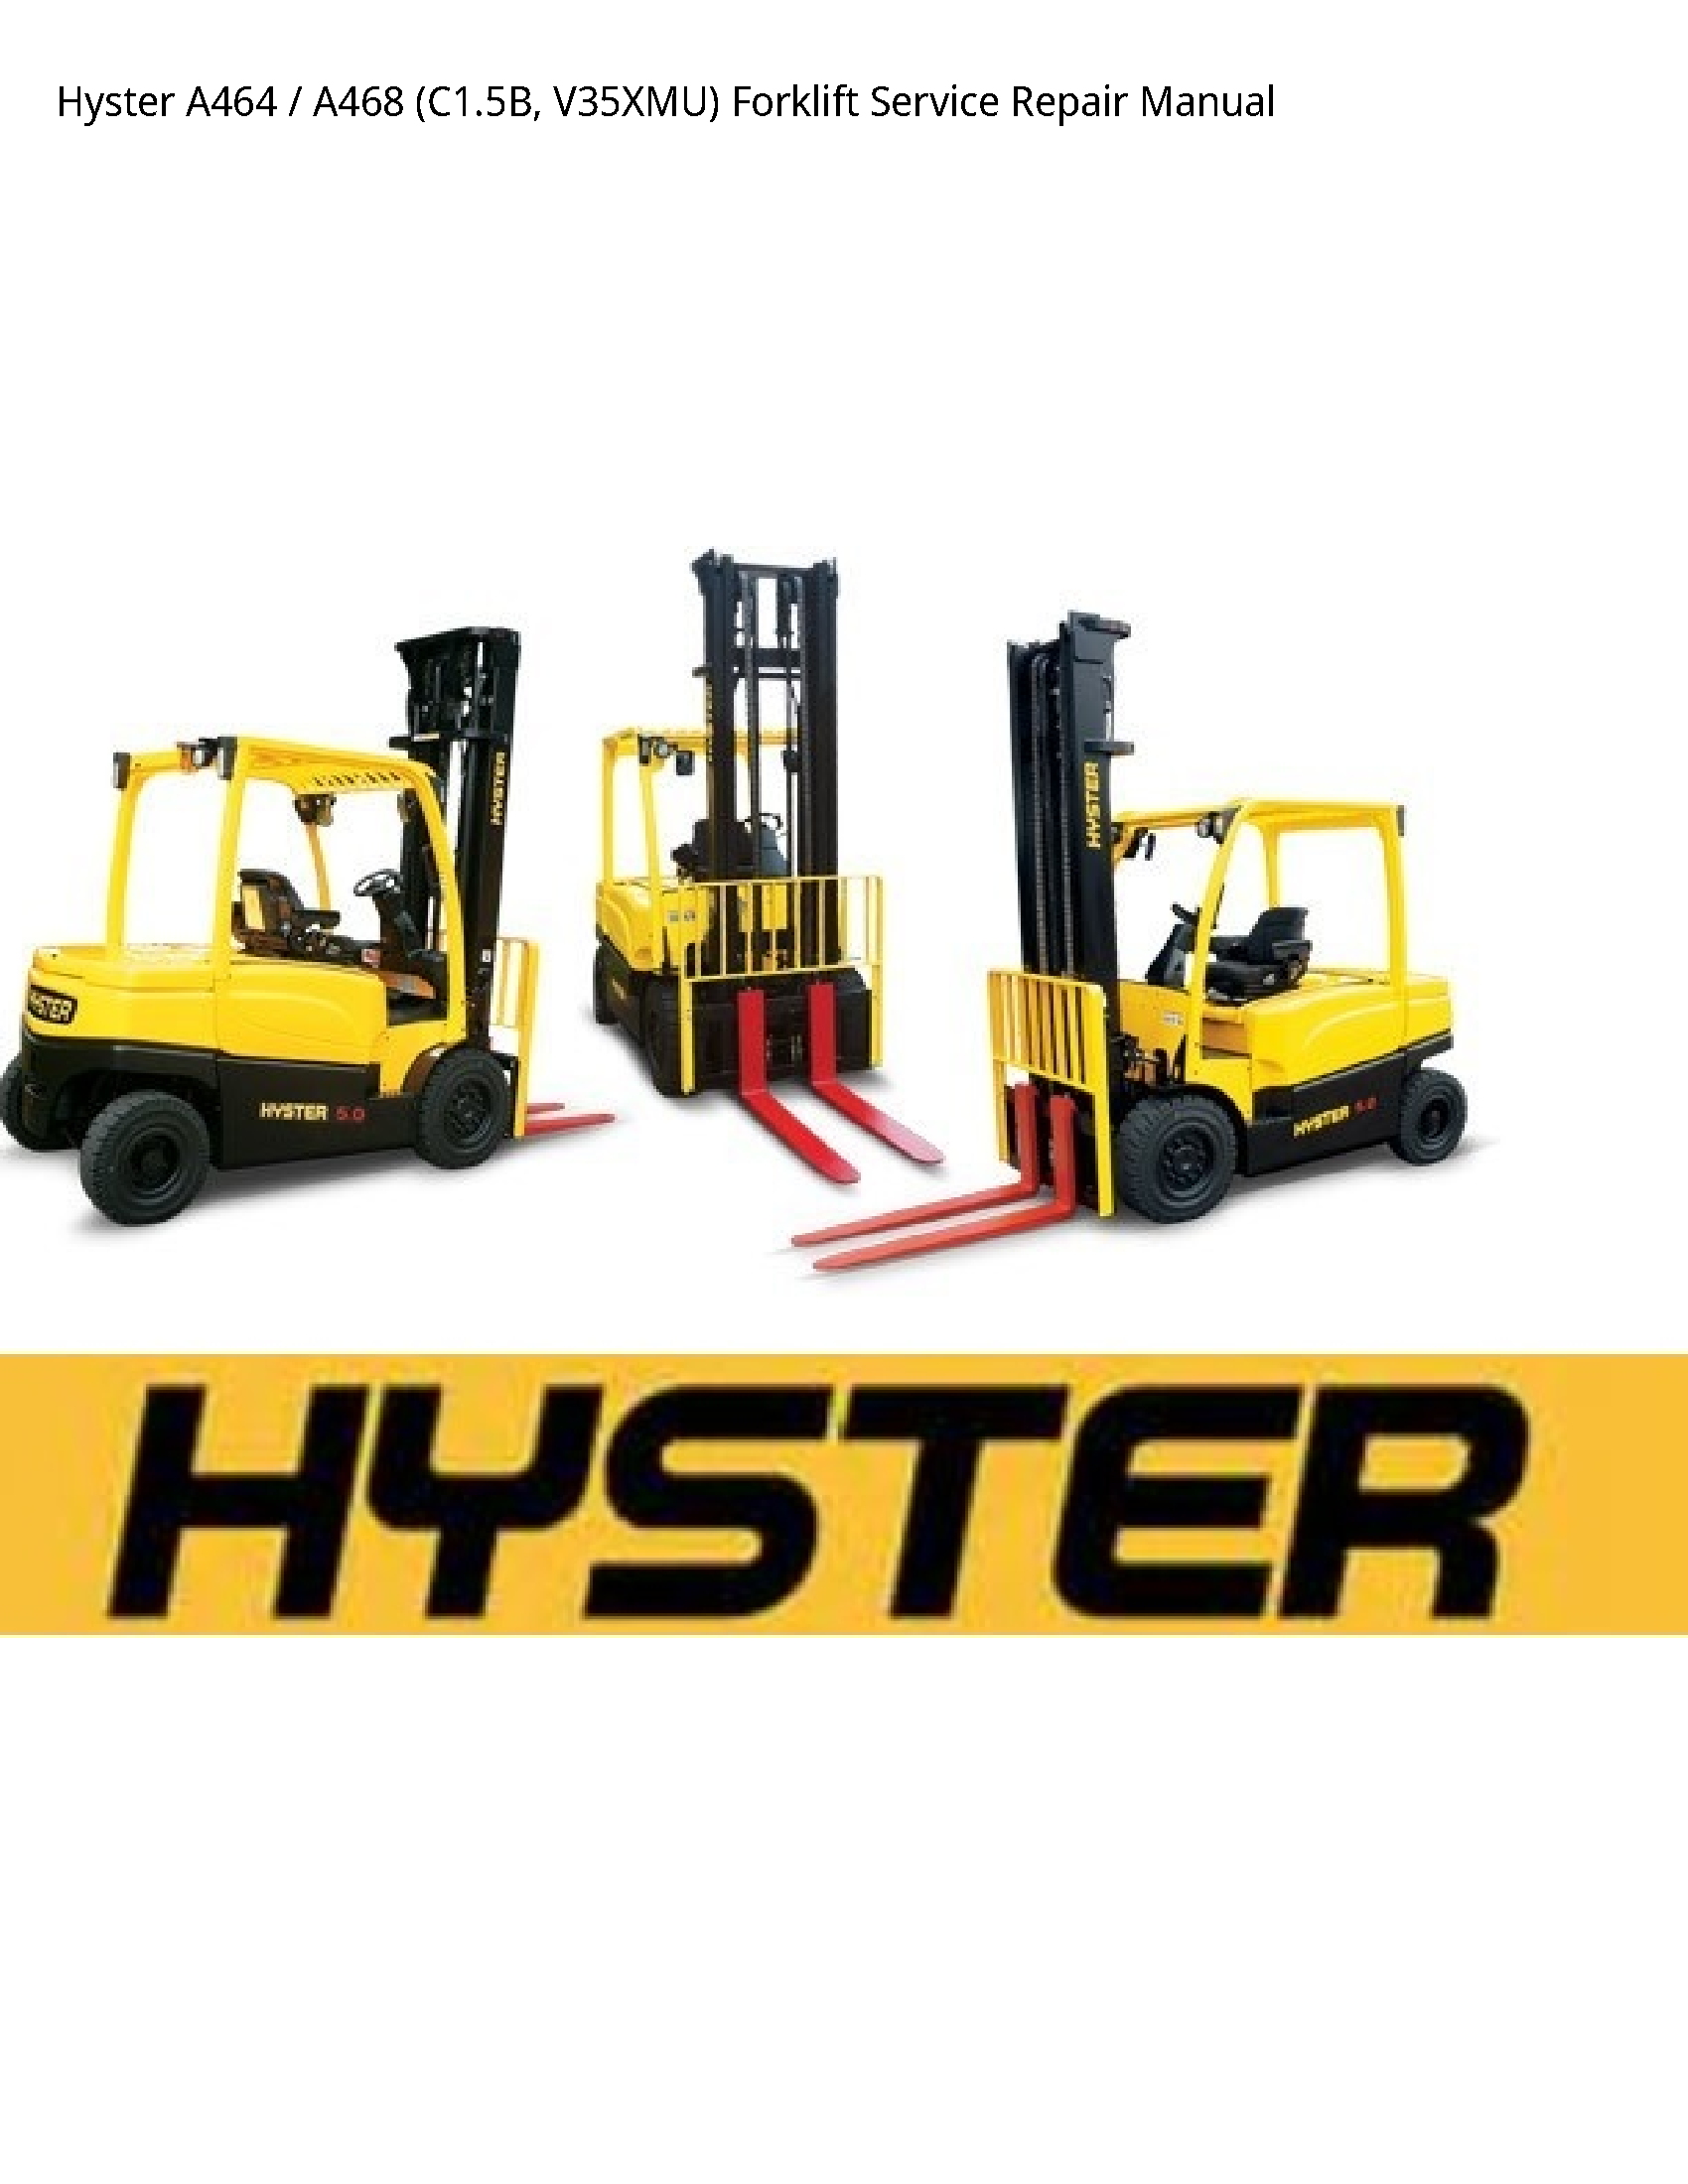 Hyster A464 Forklift manual